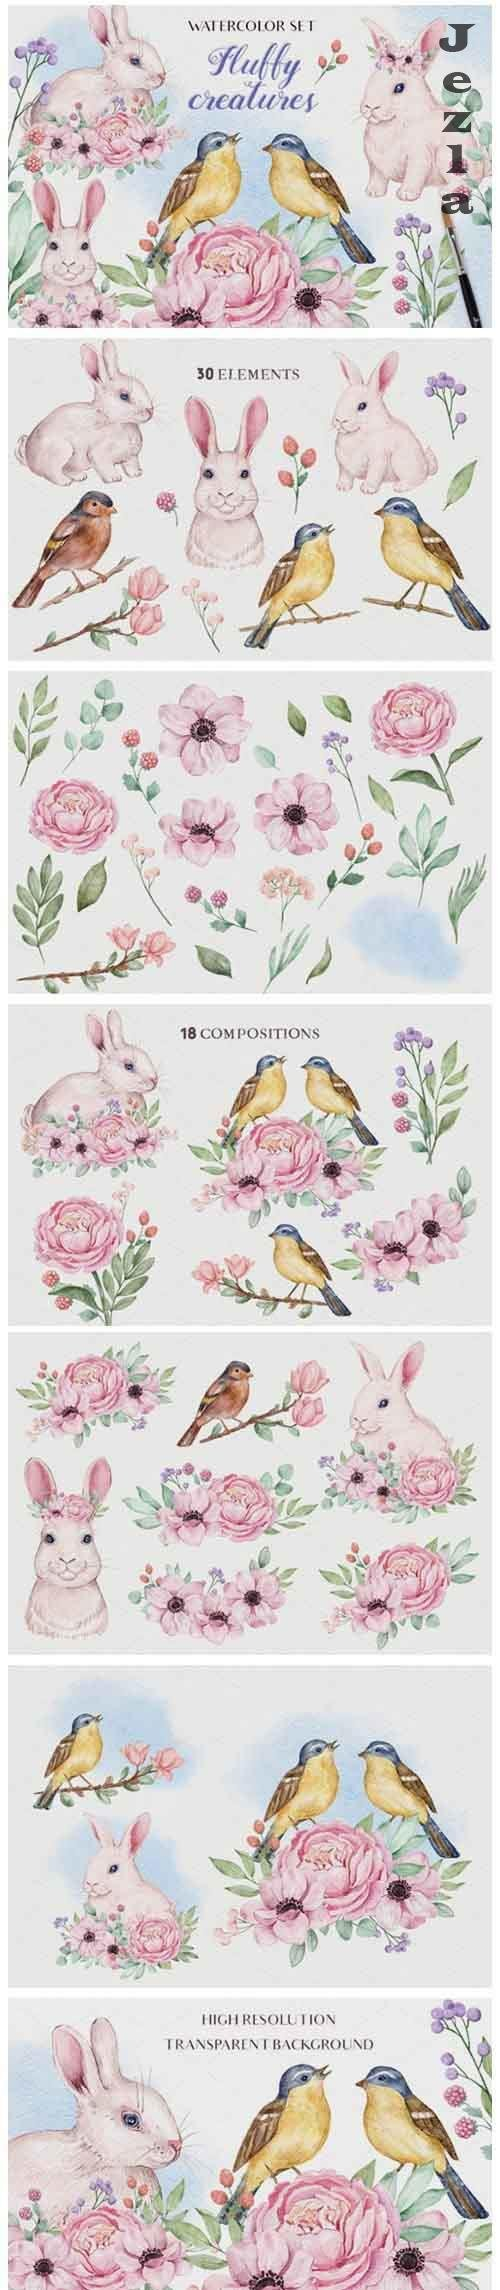 Fluffy Creatures - Watercolor Set - 5862626